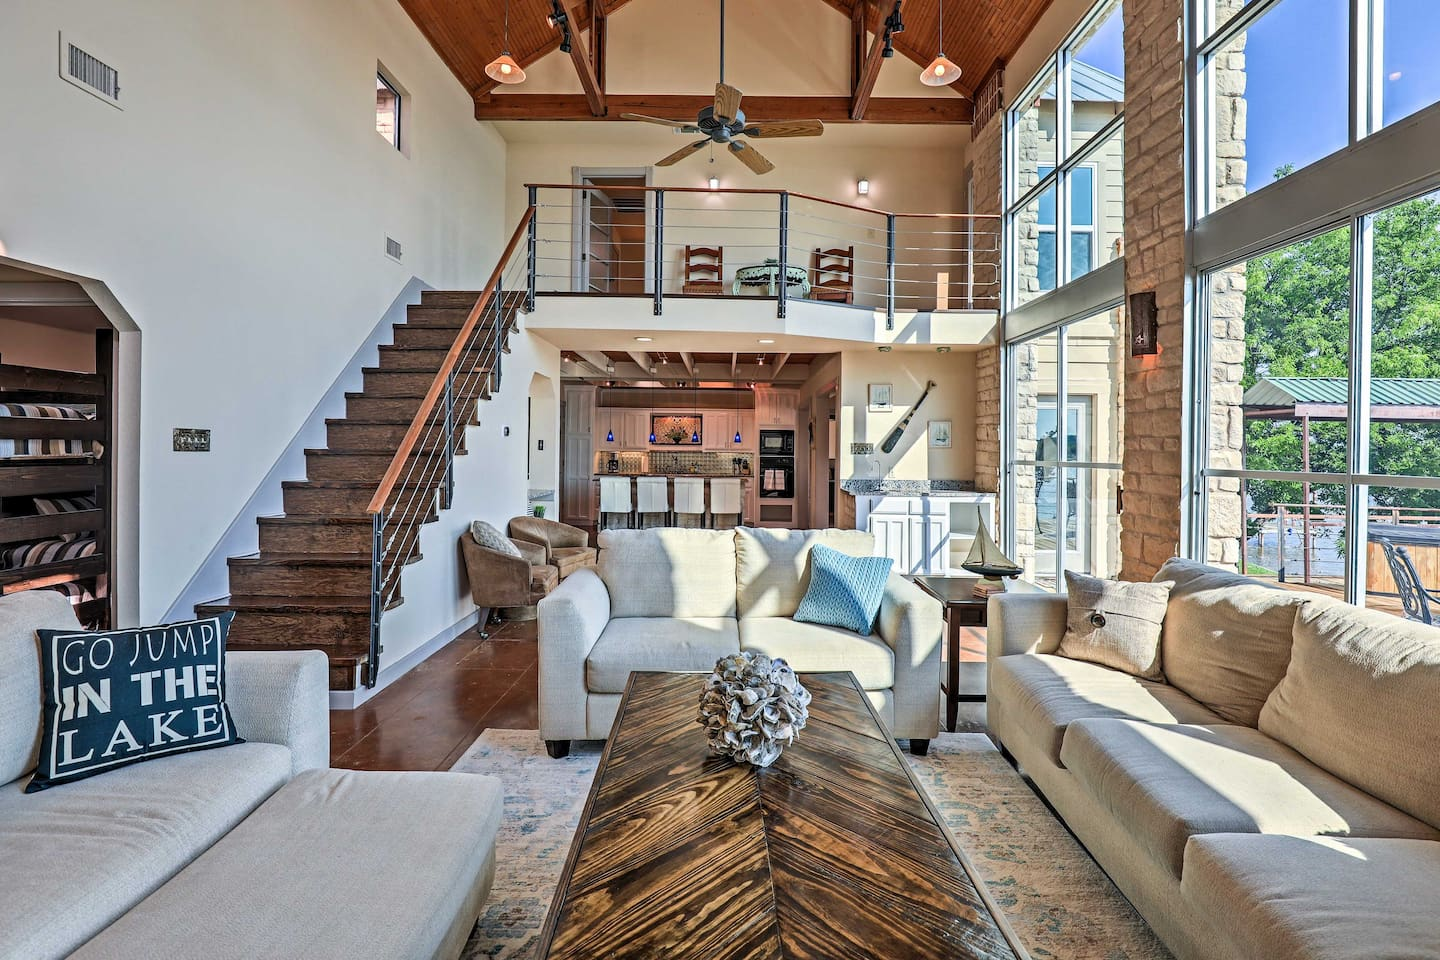 Make the most of your Texas retreat at this gorgeous vacation rental house!